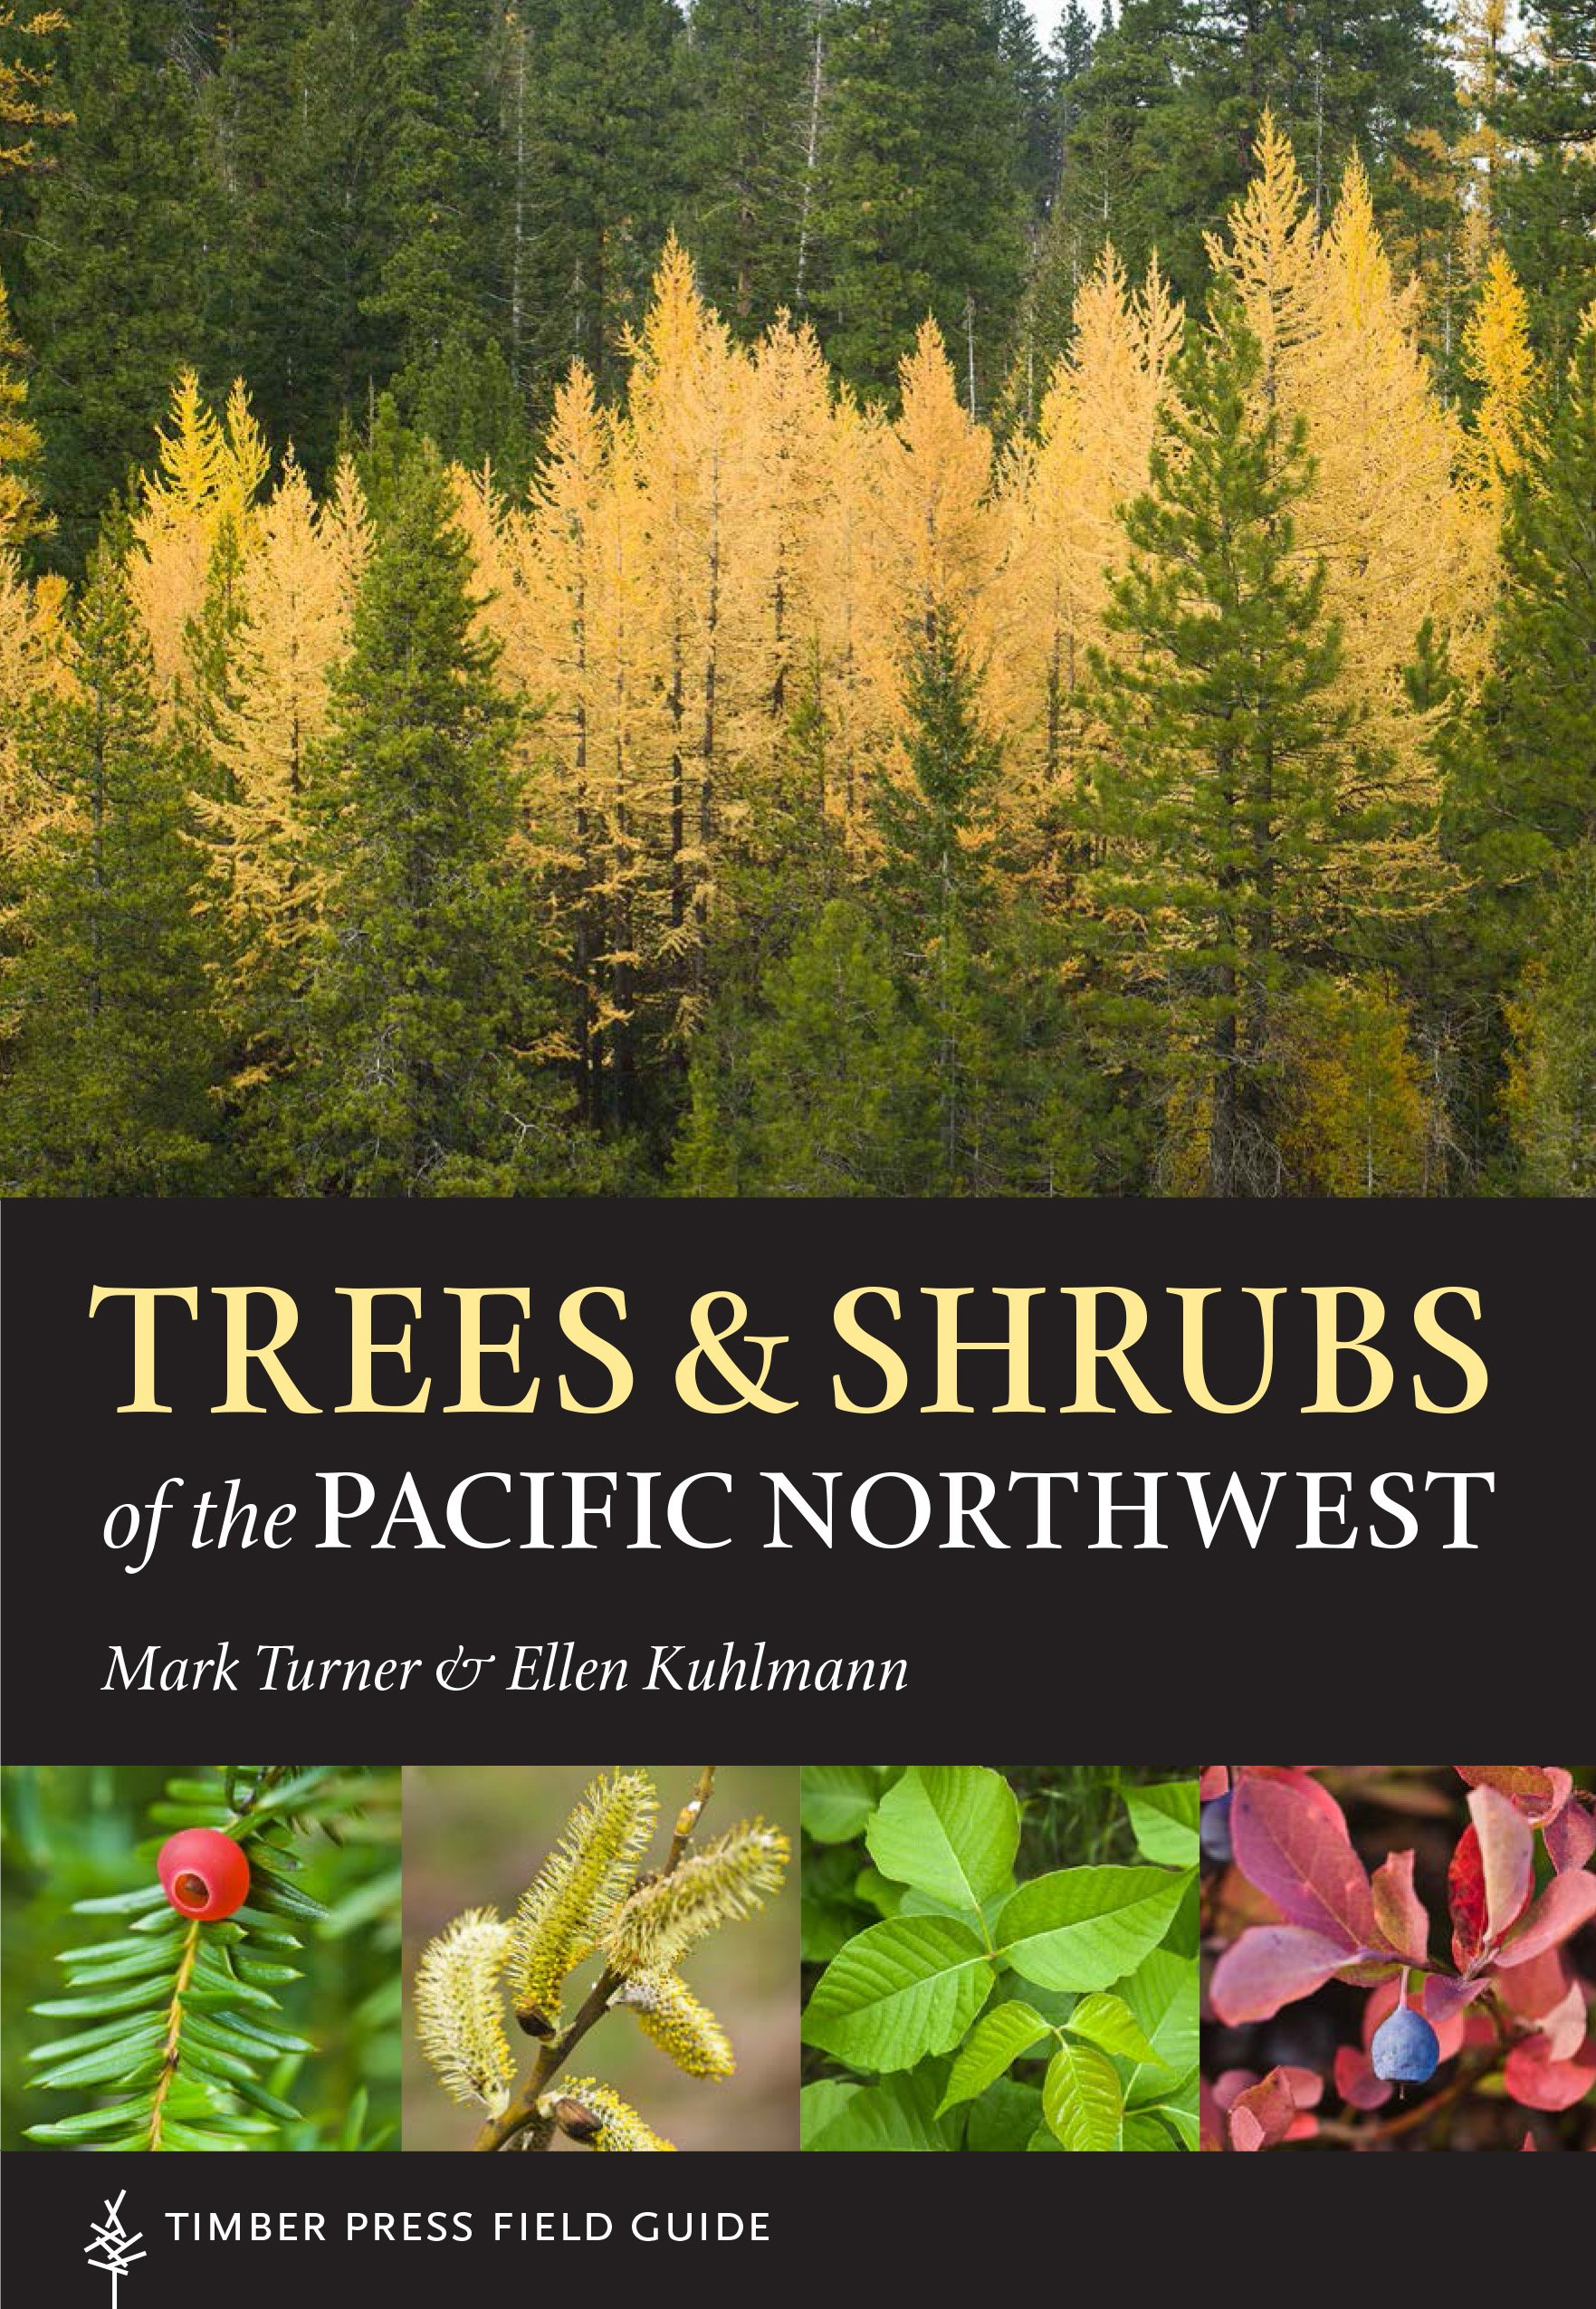 trees and shrubs of the pacific northwest.jpg